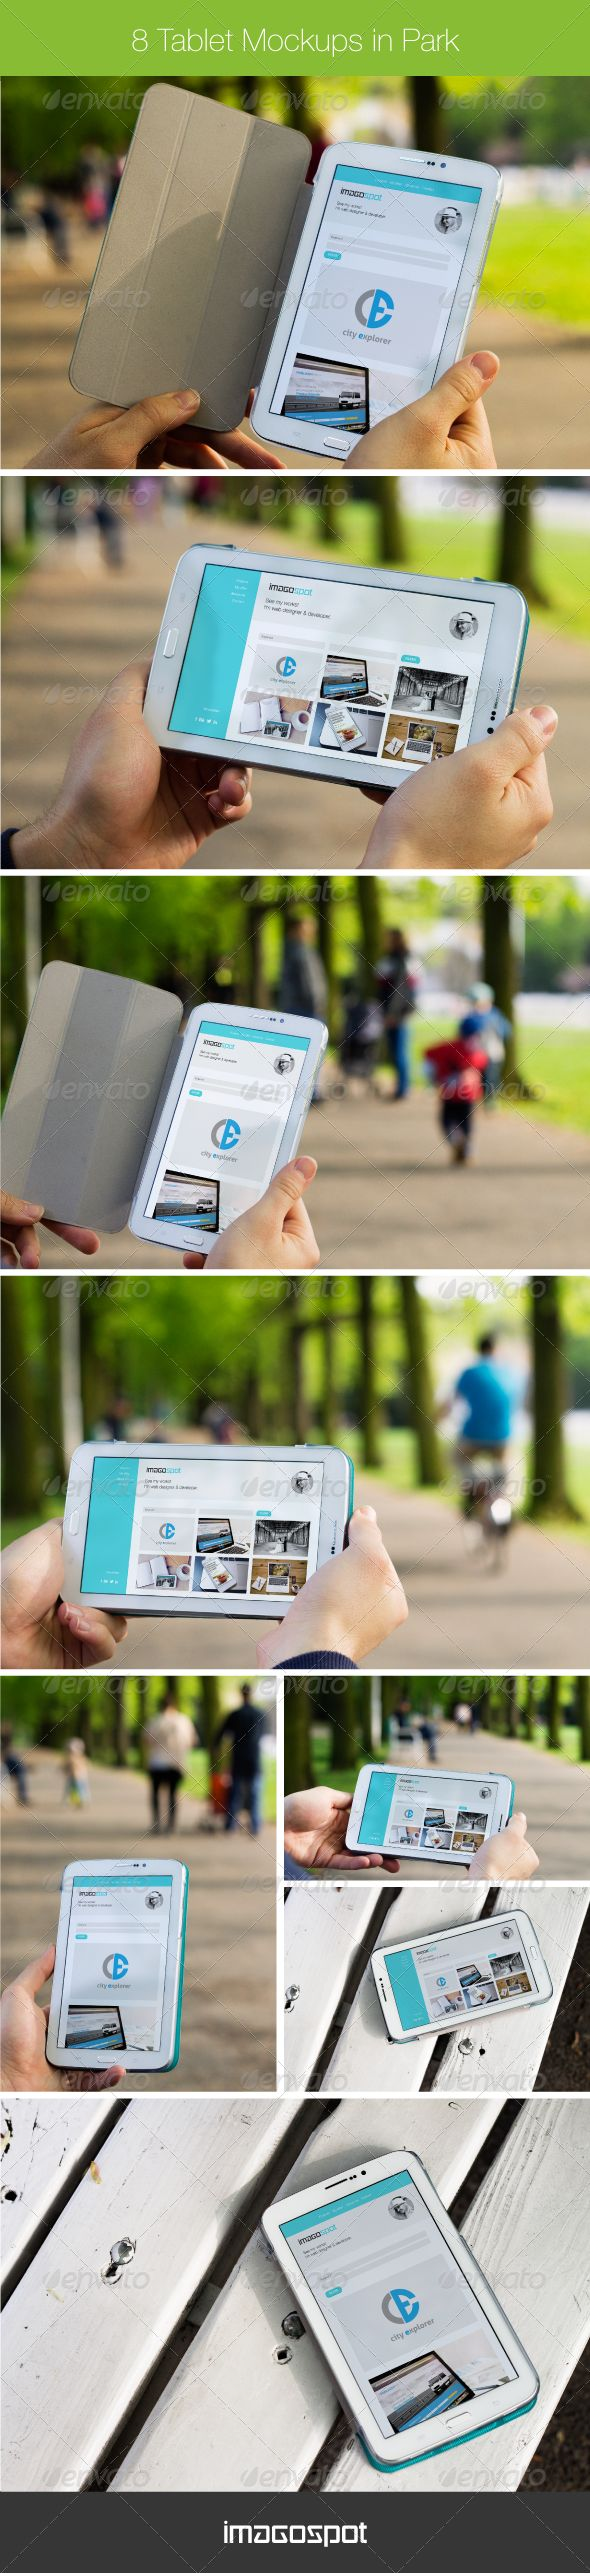 8 White Galaxy Tablet Mockups in Green Park — Photoshop PSD #grass #family • Available here → https://graphicriver.net/item/8-white-galaxy-tablet-mockups-in-green-park/7696308?ref=pxcr